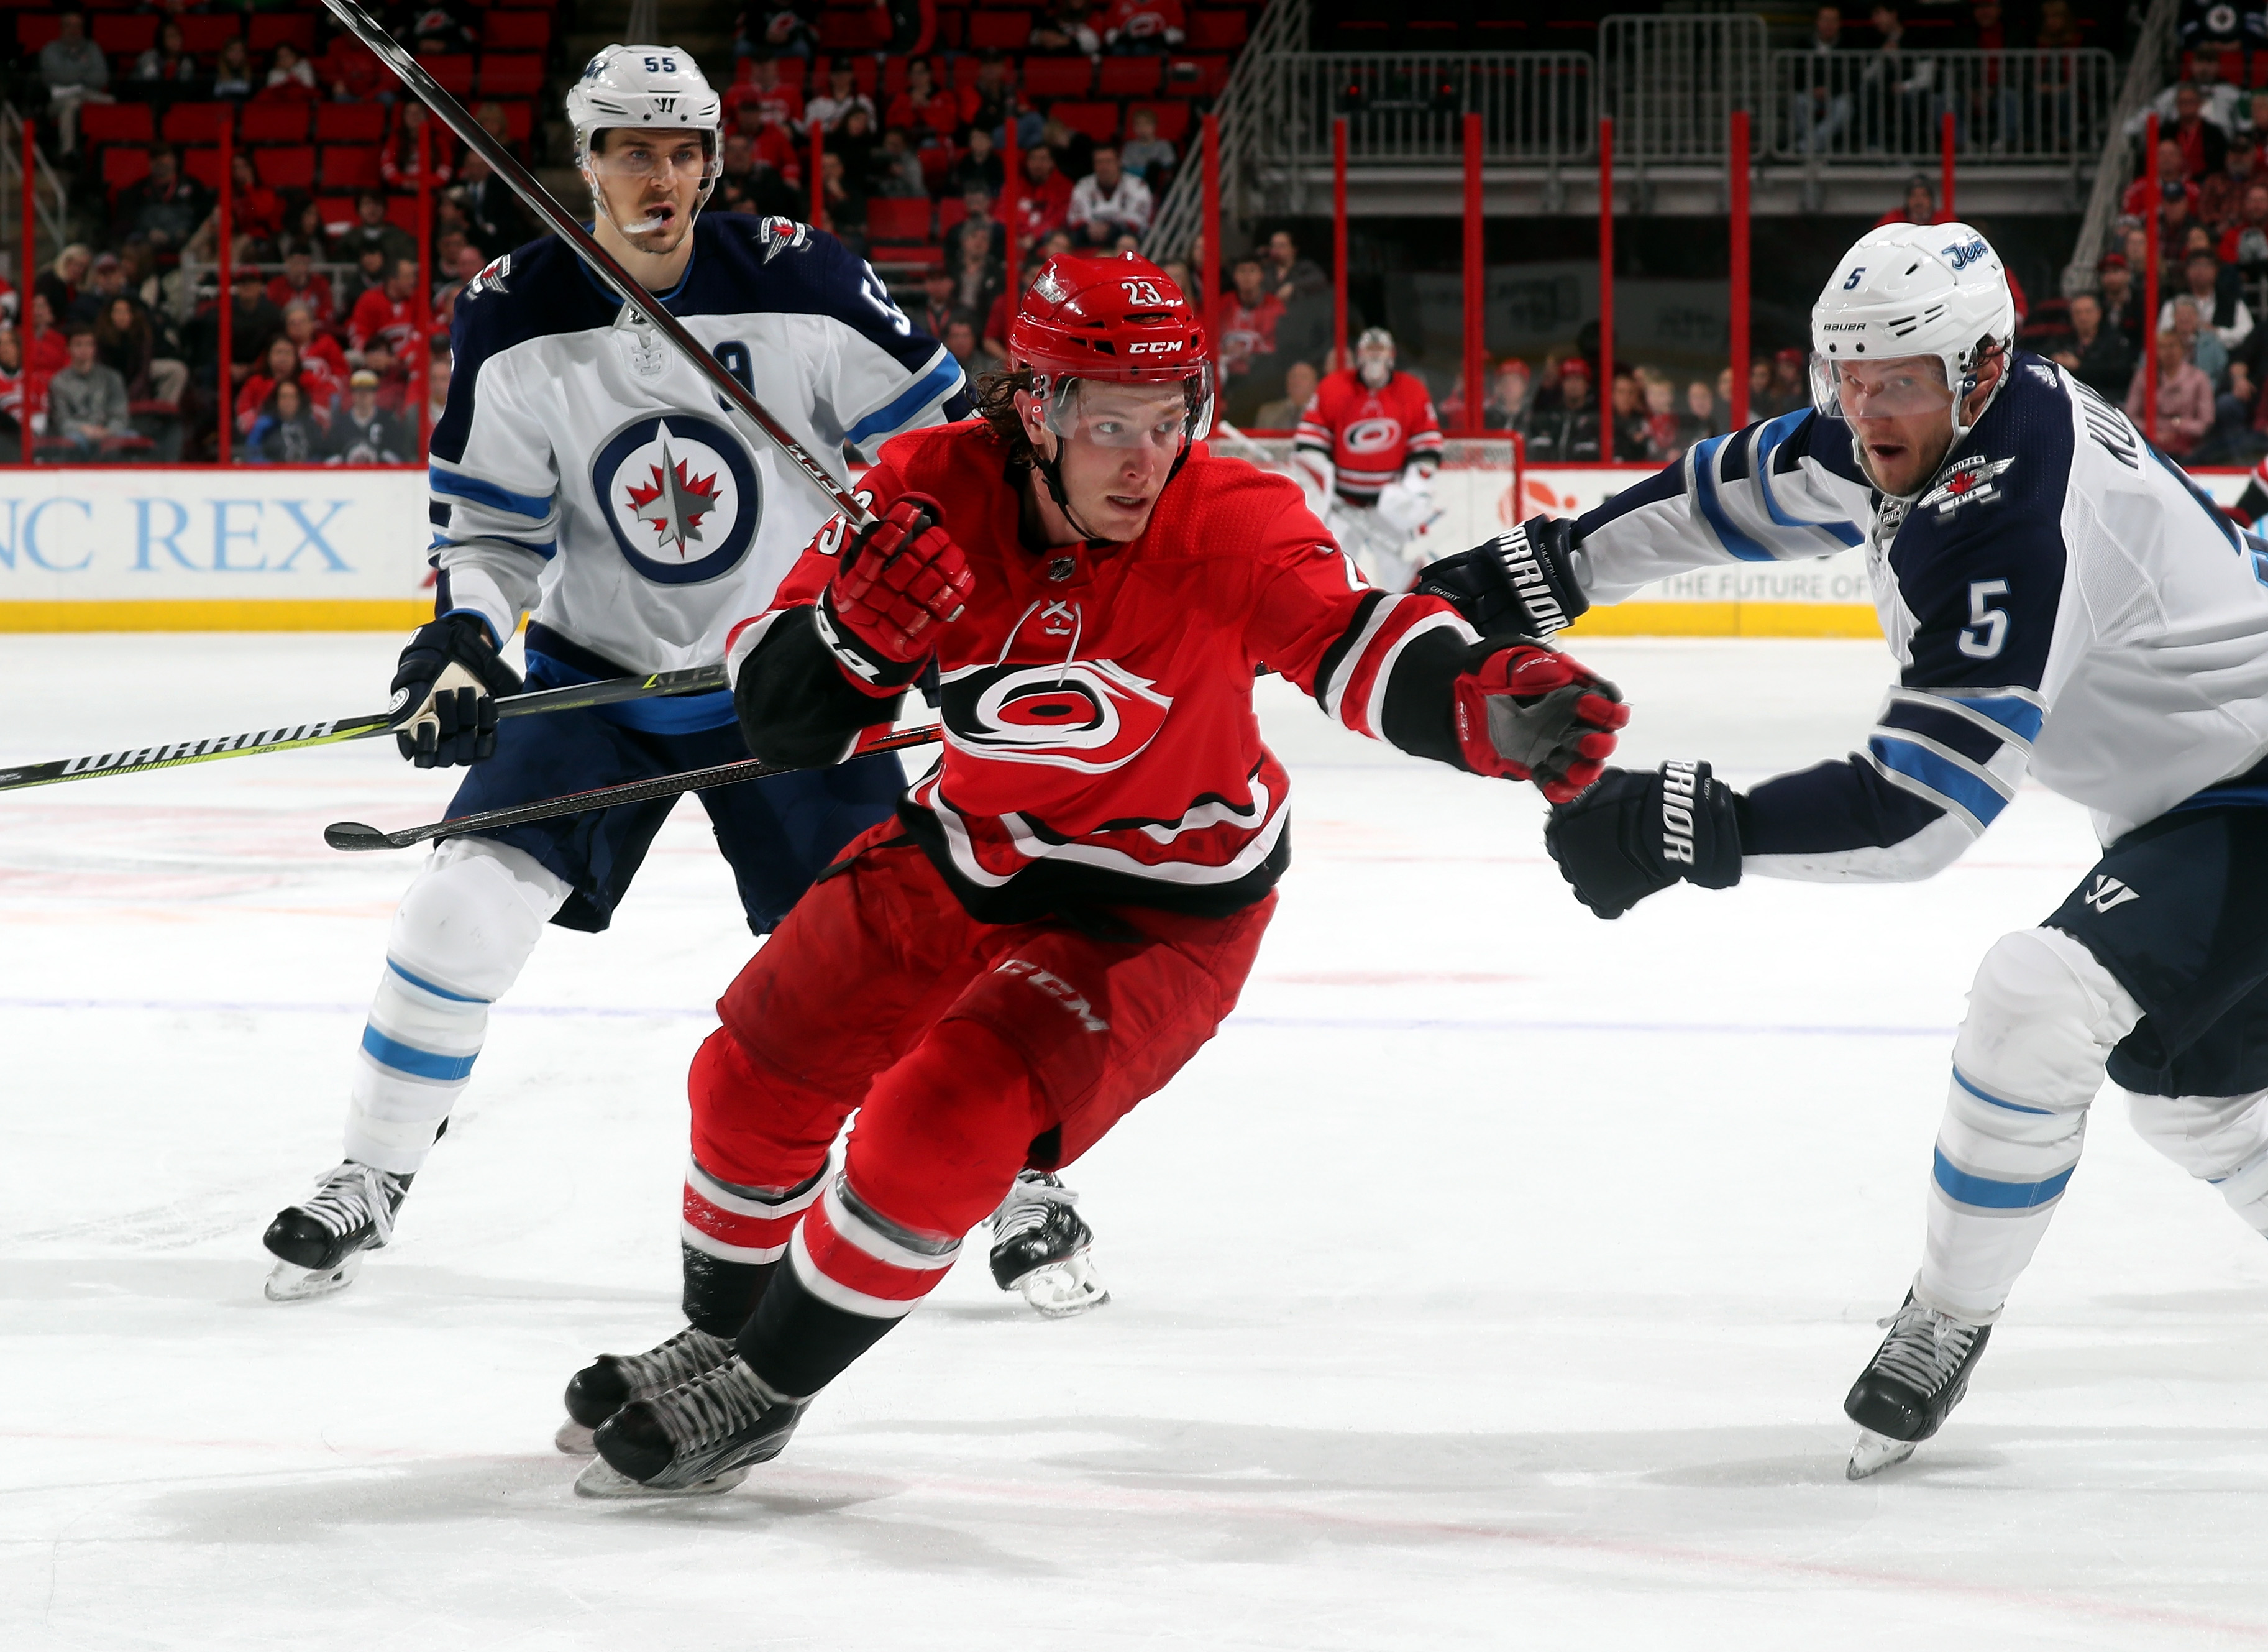 Patrik Laine strikes twice as Jets blow past Hurricanes